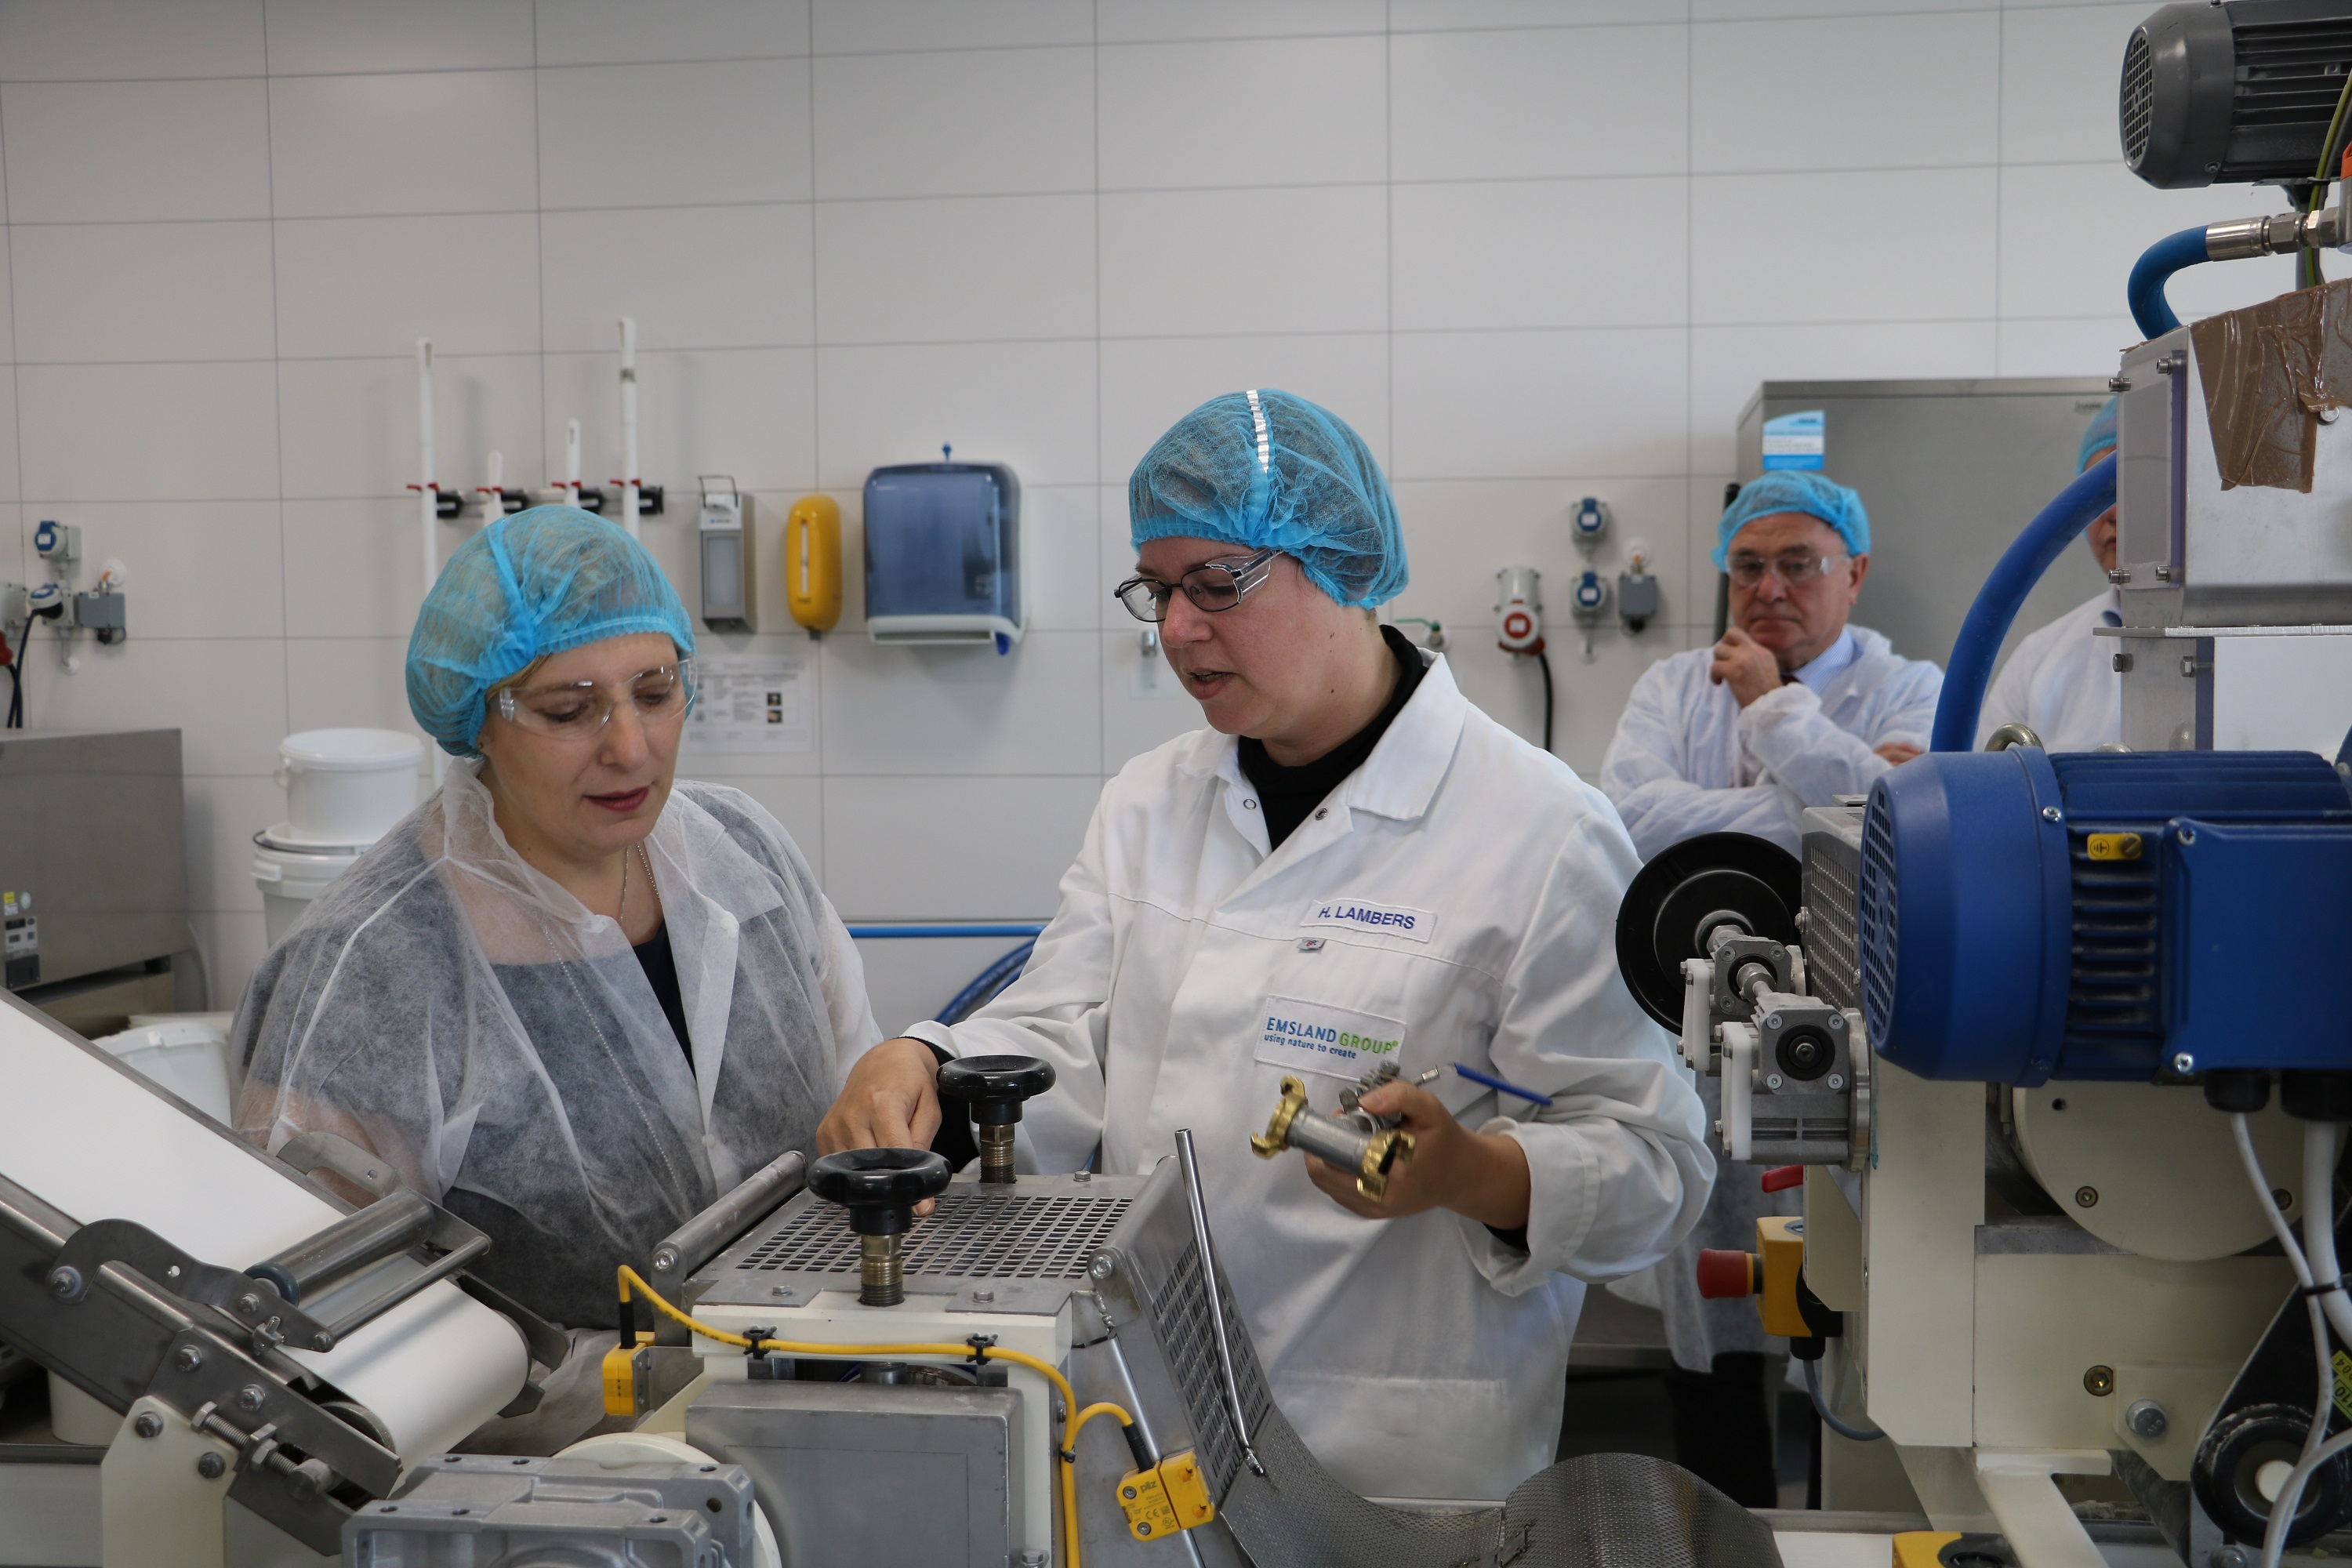 Dr. Daniela De Ridder in der Produktion bei der Emsland Group